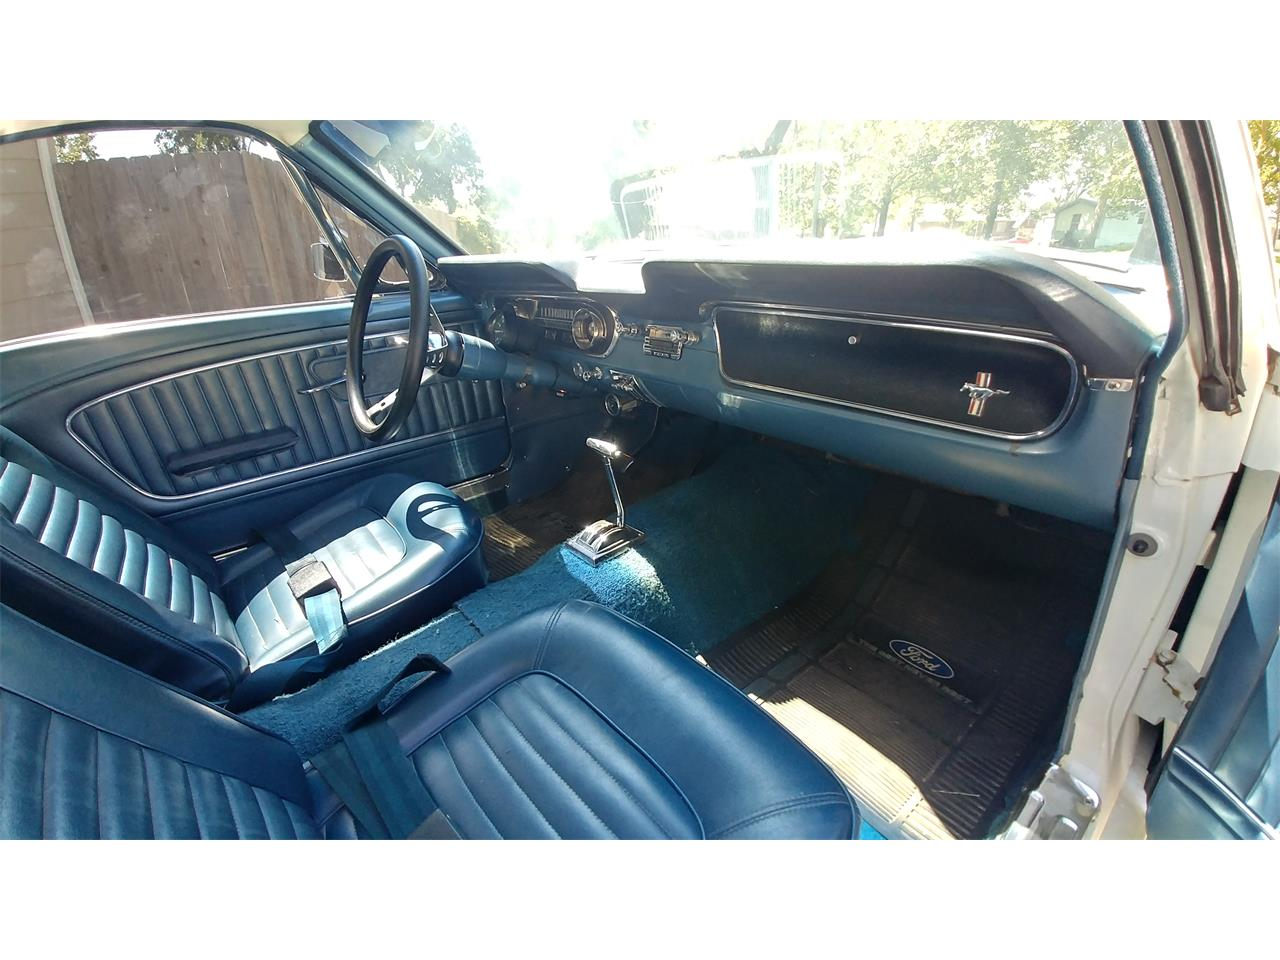 For Sale: 1965 Ford Mustang in Wichita, Kansas